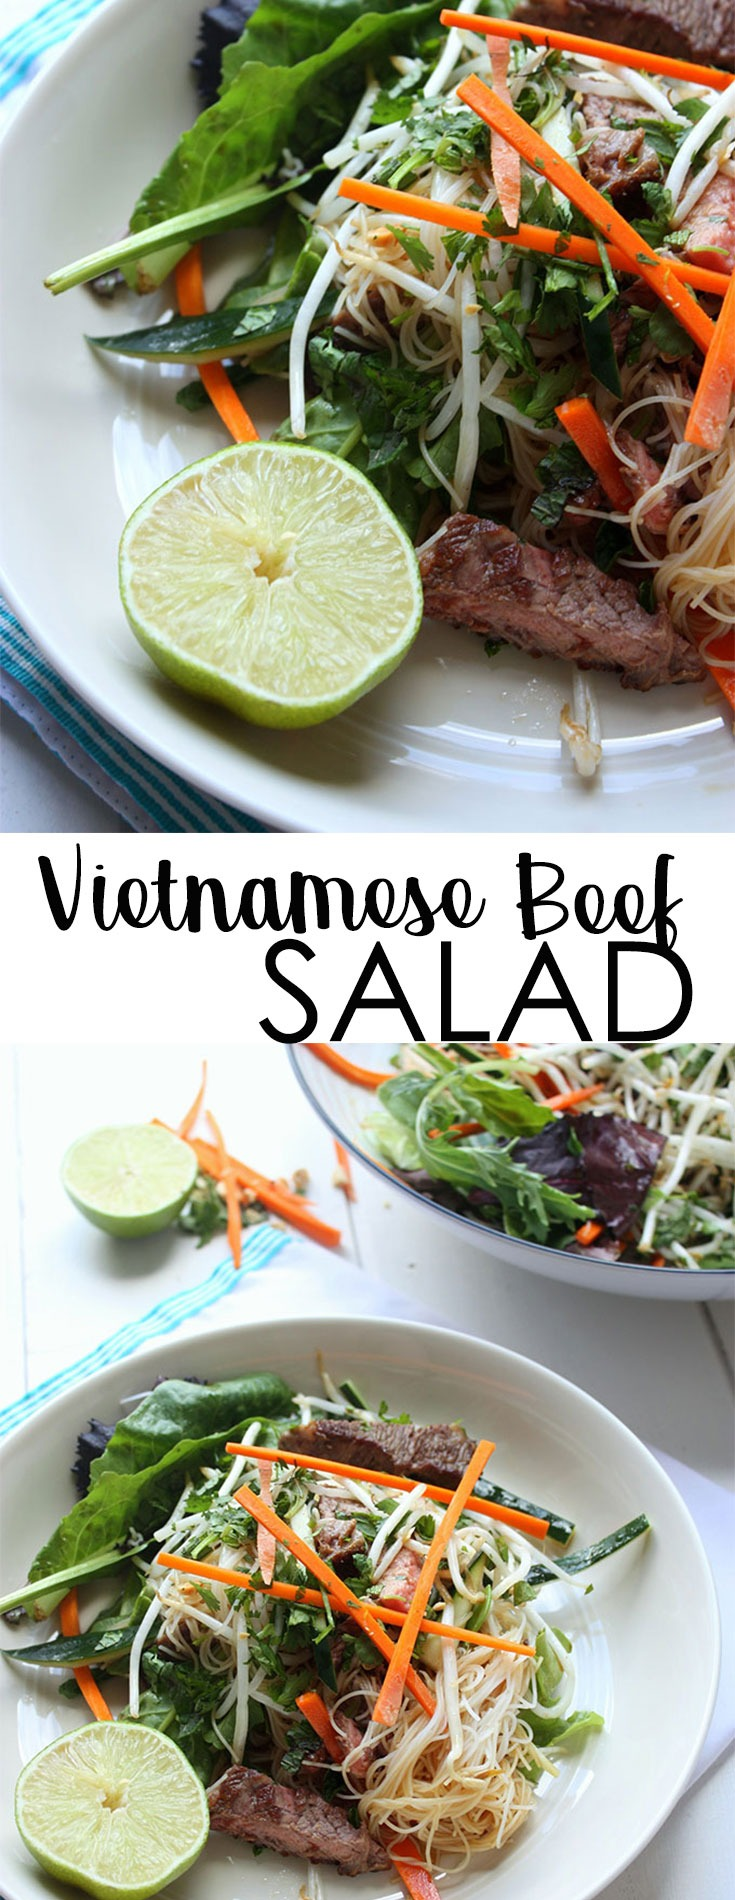 This Vietnamese Beef Salad is light, fresh, hearty and healthy. A winning combination of classic Vietnamese flavours, this salad is perfect for lunch, dinner, summer picnics or weekend gatherings. #vietnamesebeefsalad #beefsalad #healthysalad #saladrecipe